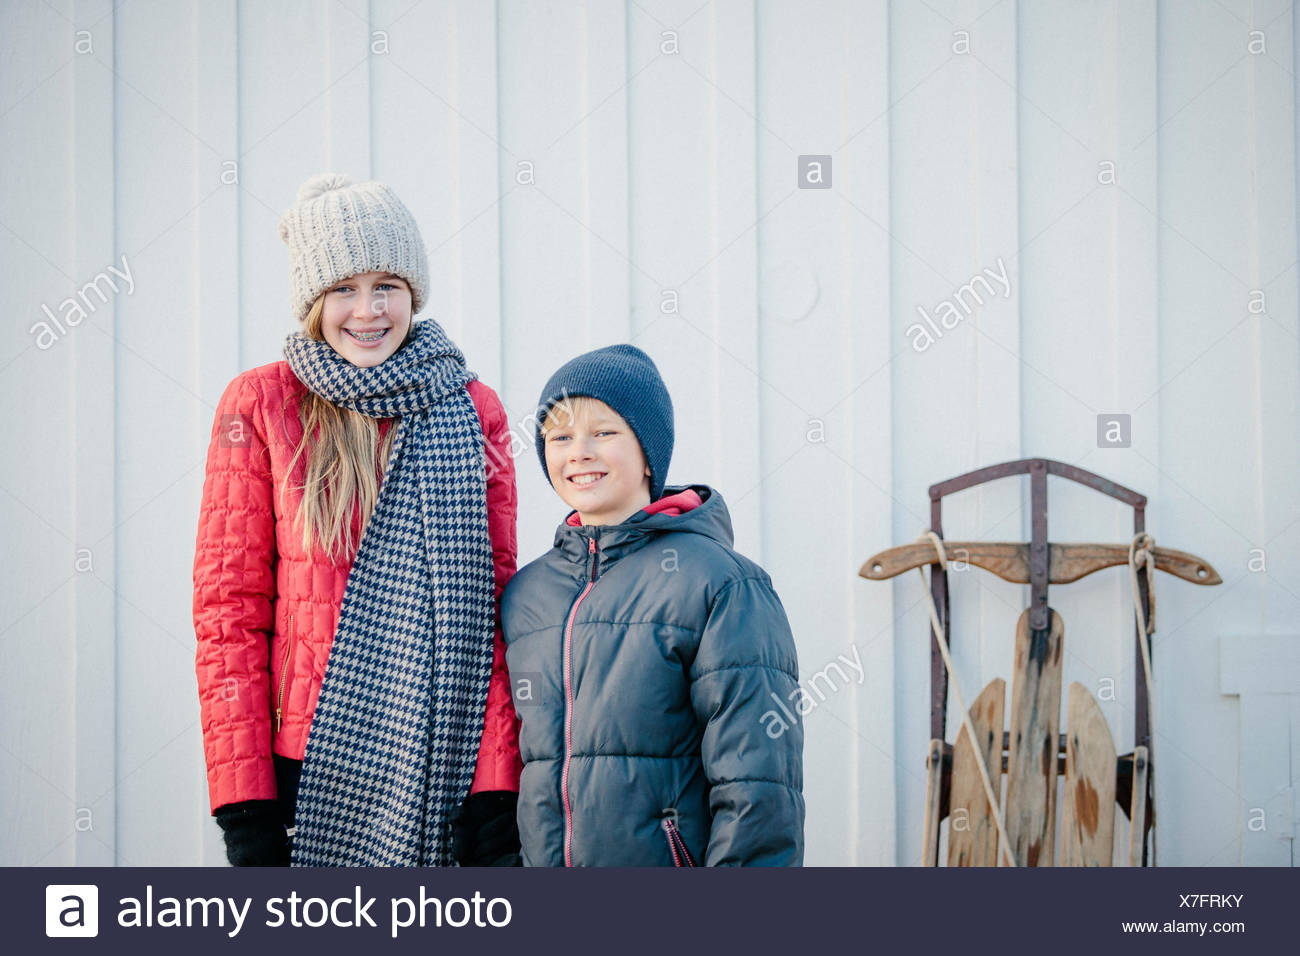 A brother and sister side by side in a yard in winter. - Stock Image